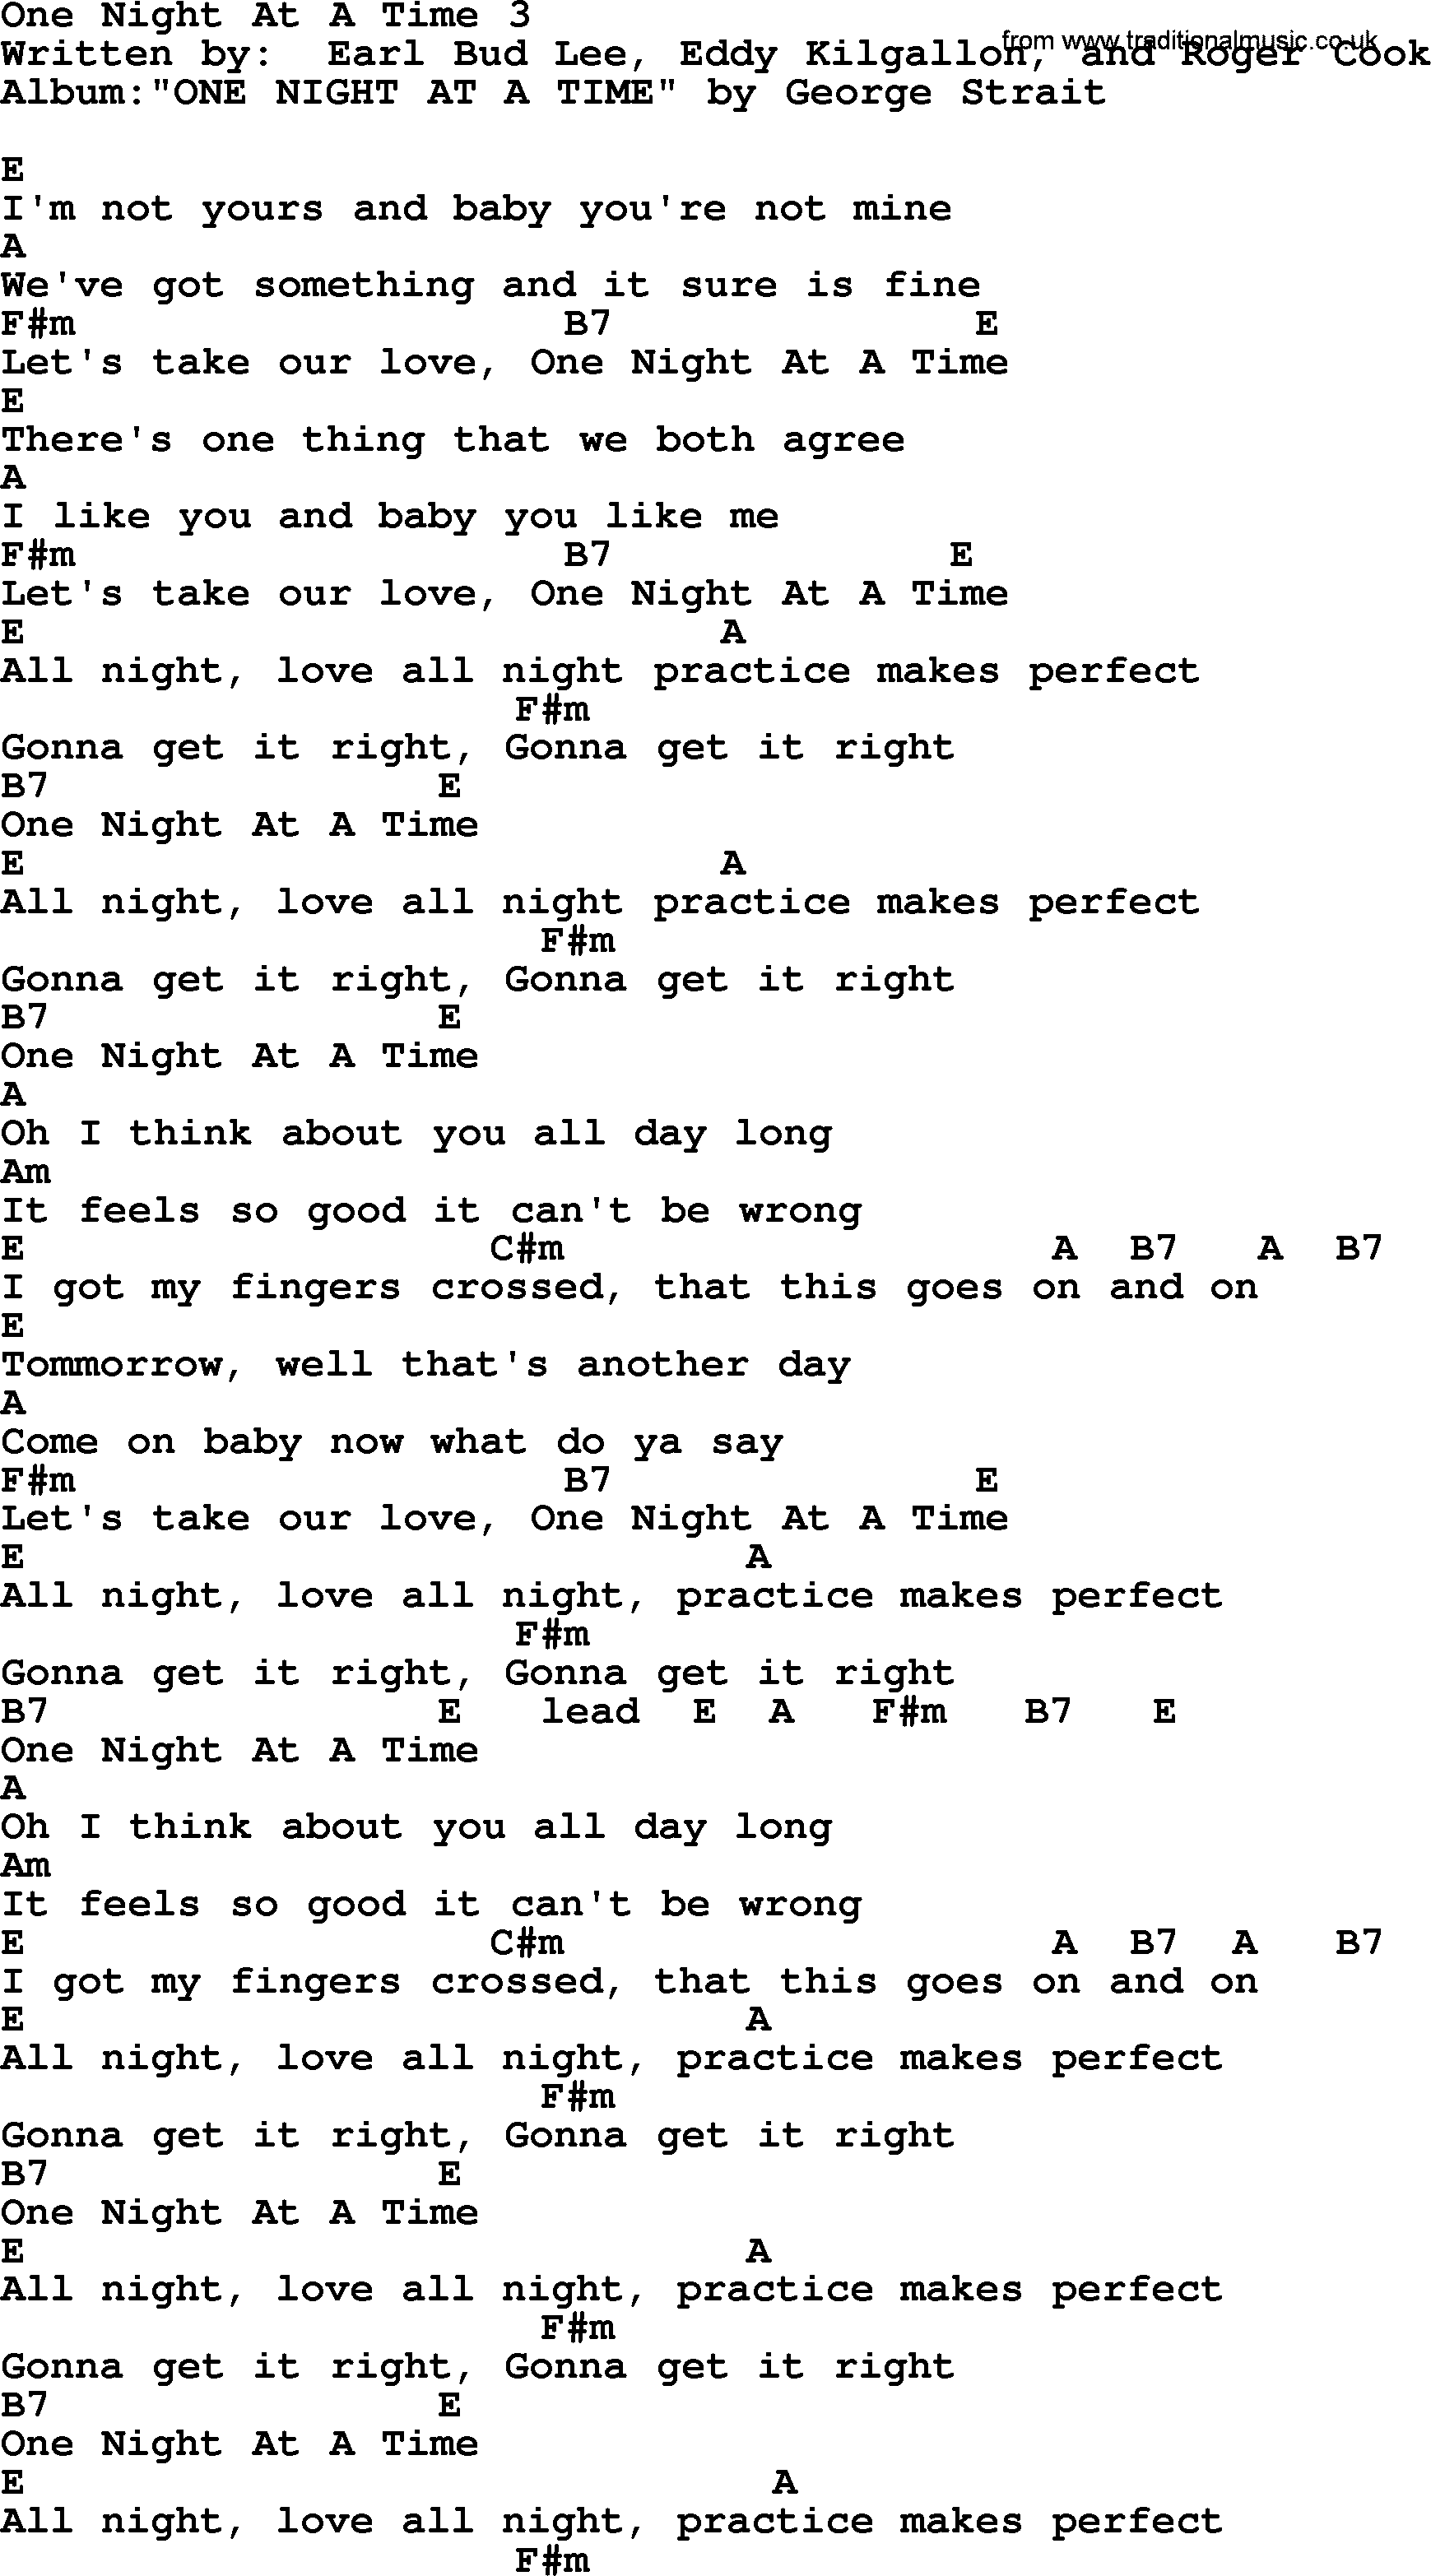 One Night At A Time 3 By George Strait Lyrics And Chords